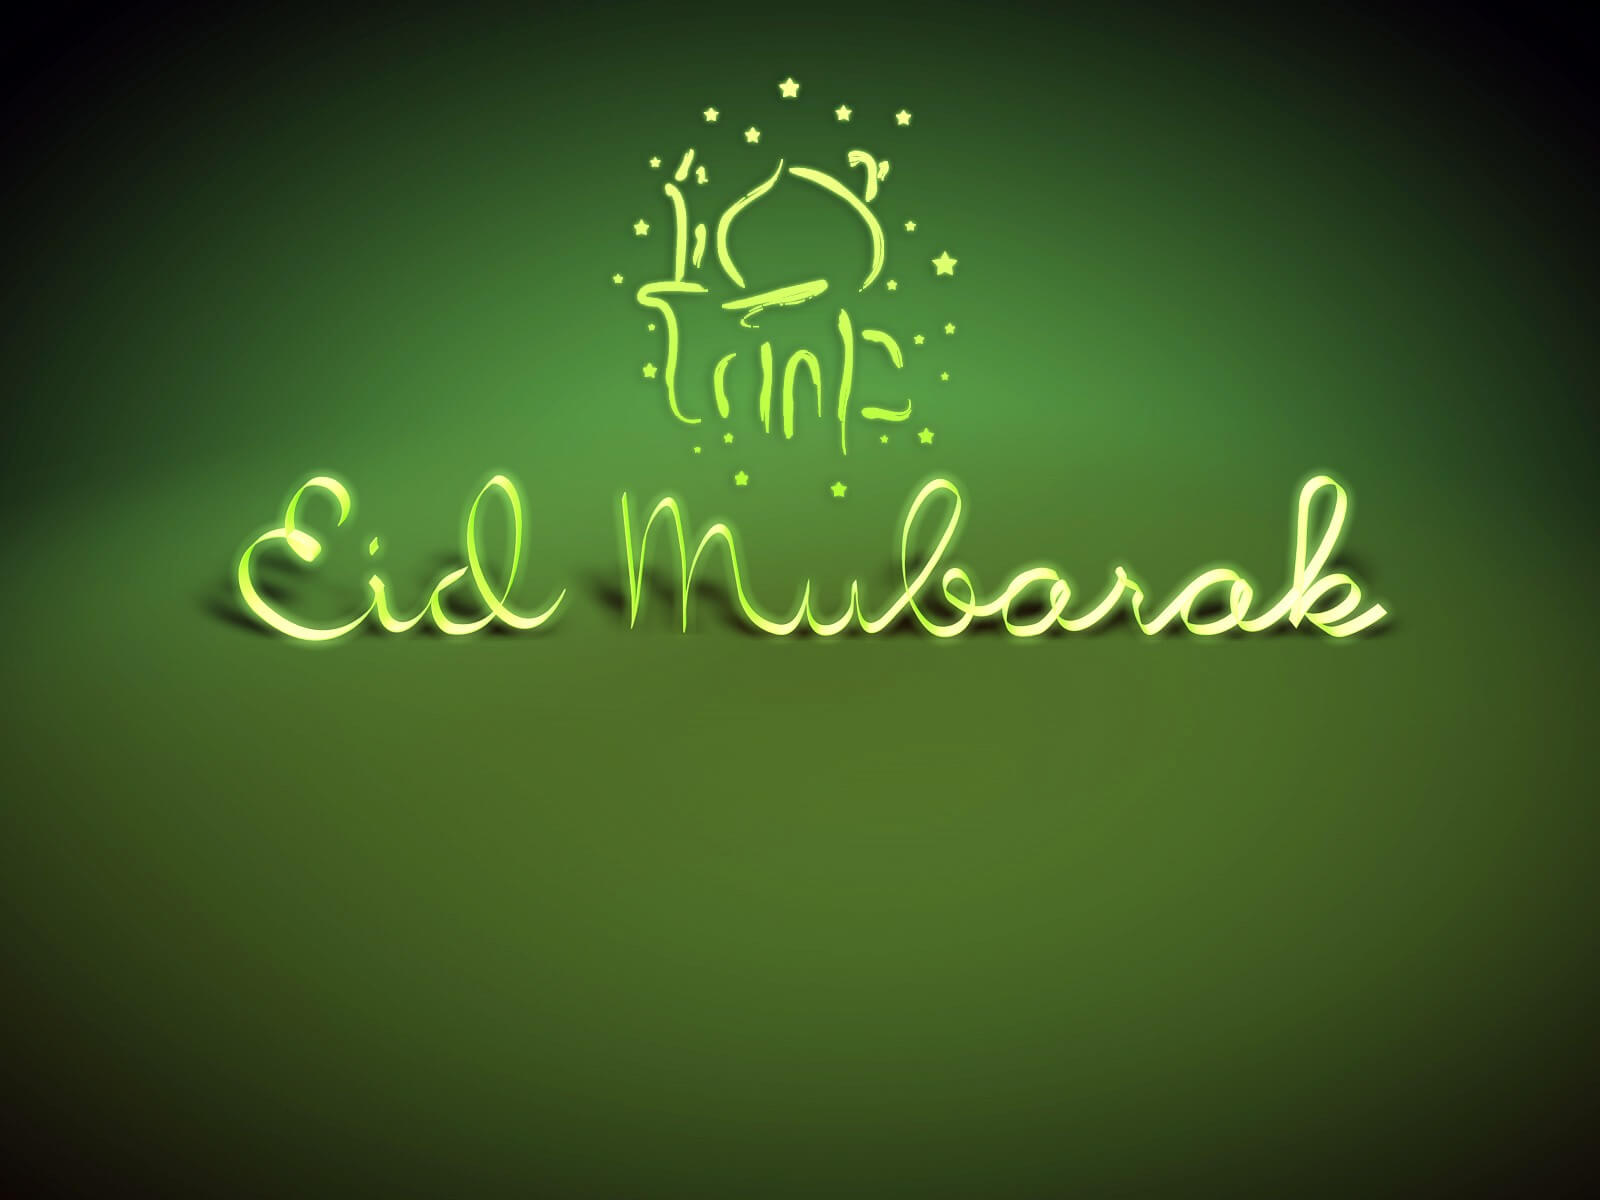 Hd wallpaper ramzan mubarak - Happy Eid Mubarak Ramzan Wishes Wallpaper